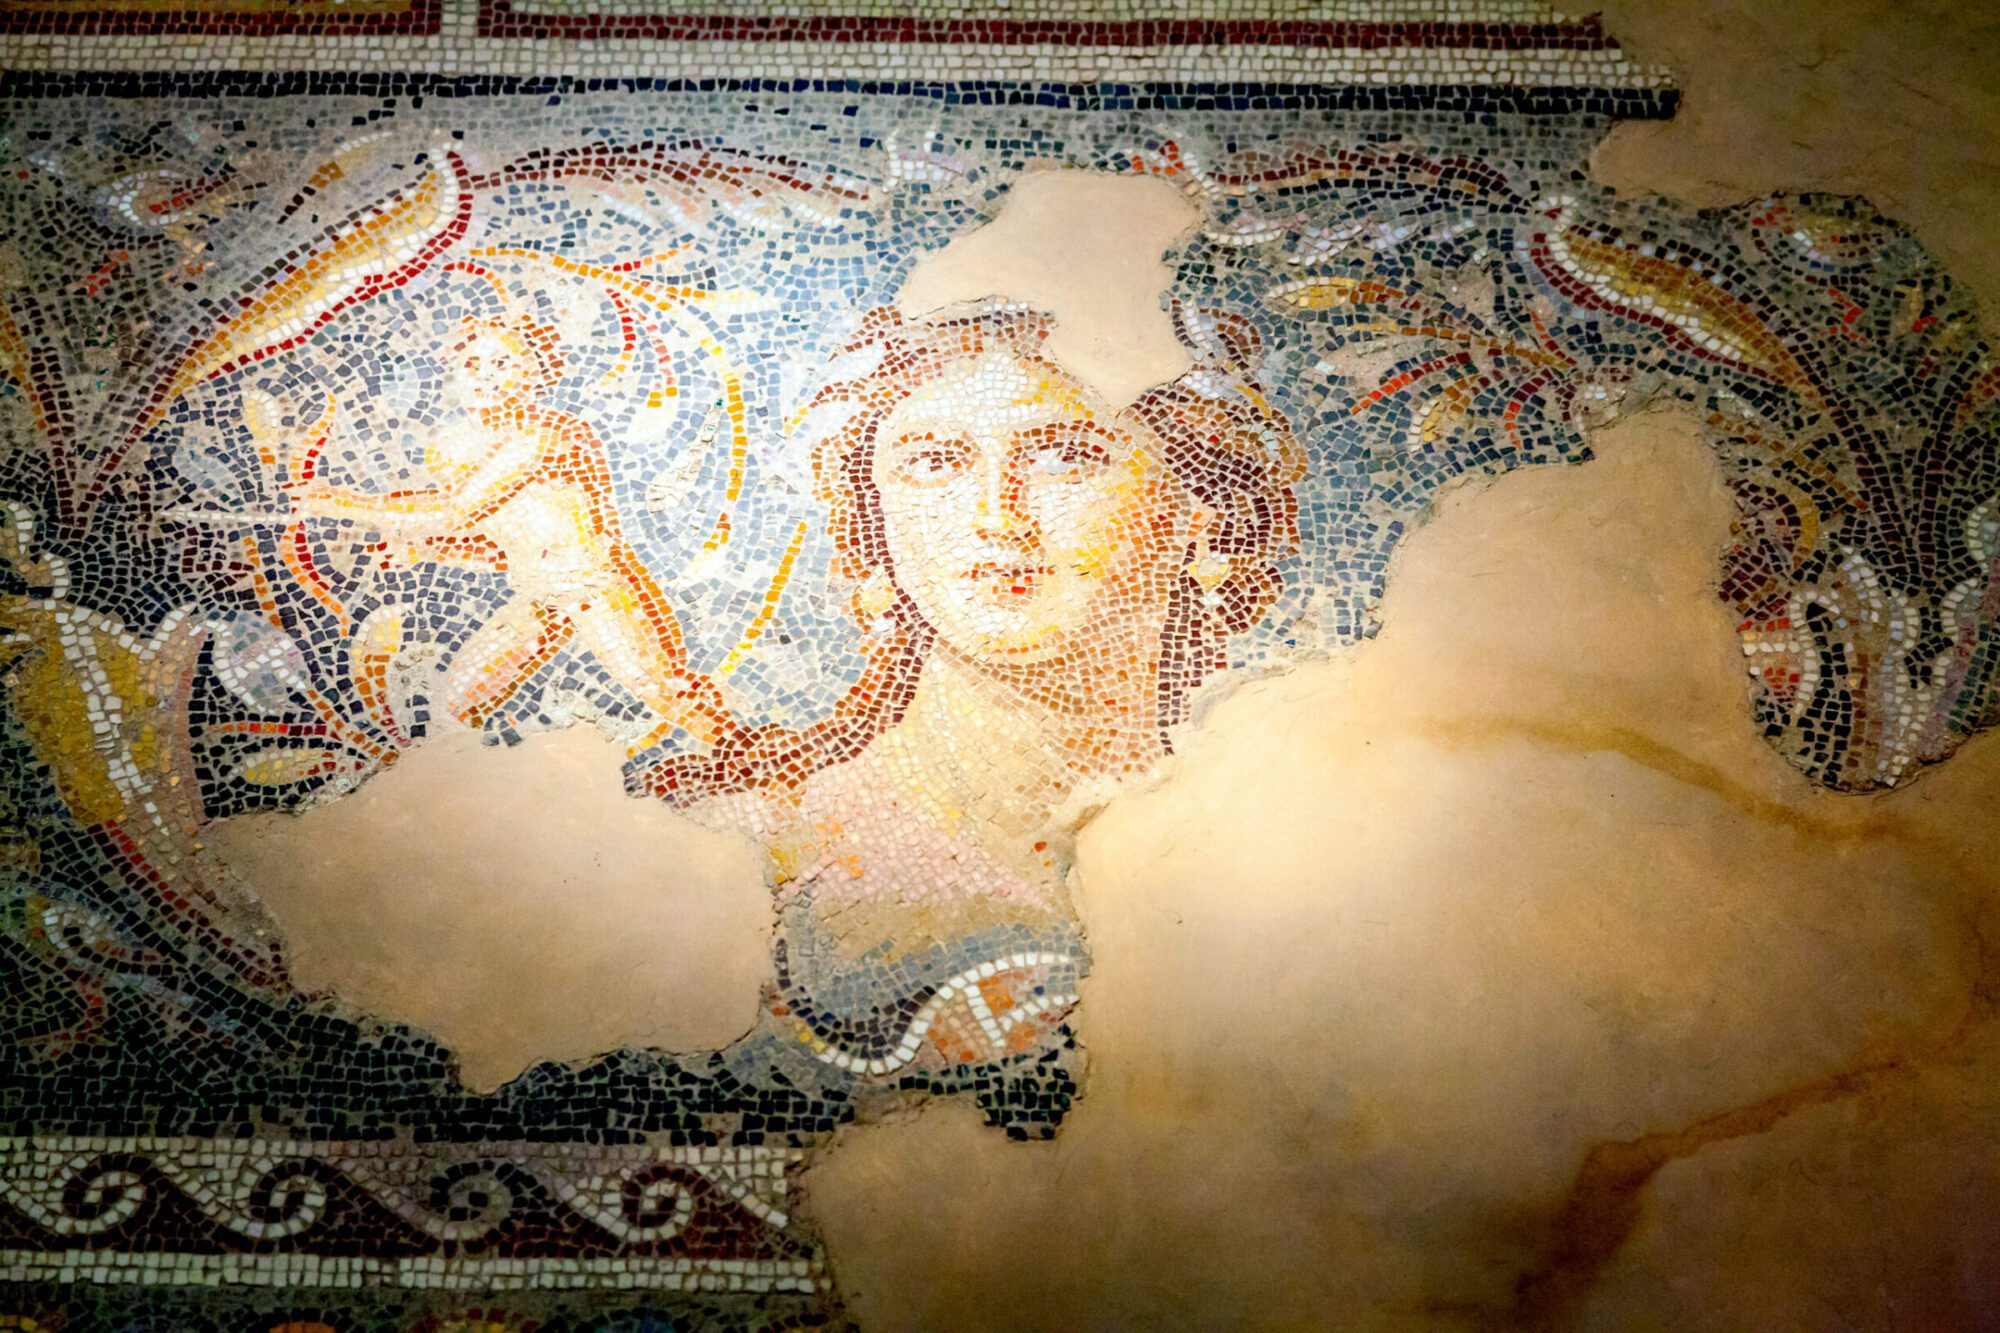 Israel Archaeological One Day Tours - Mona Lisa of Galilee